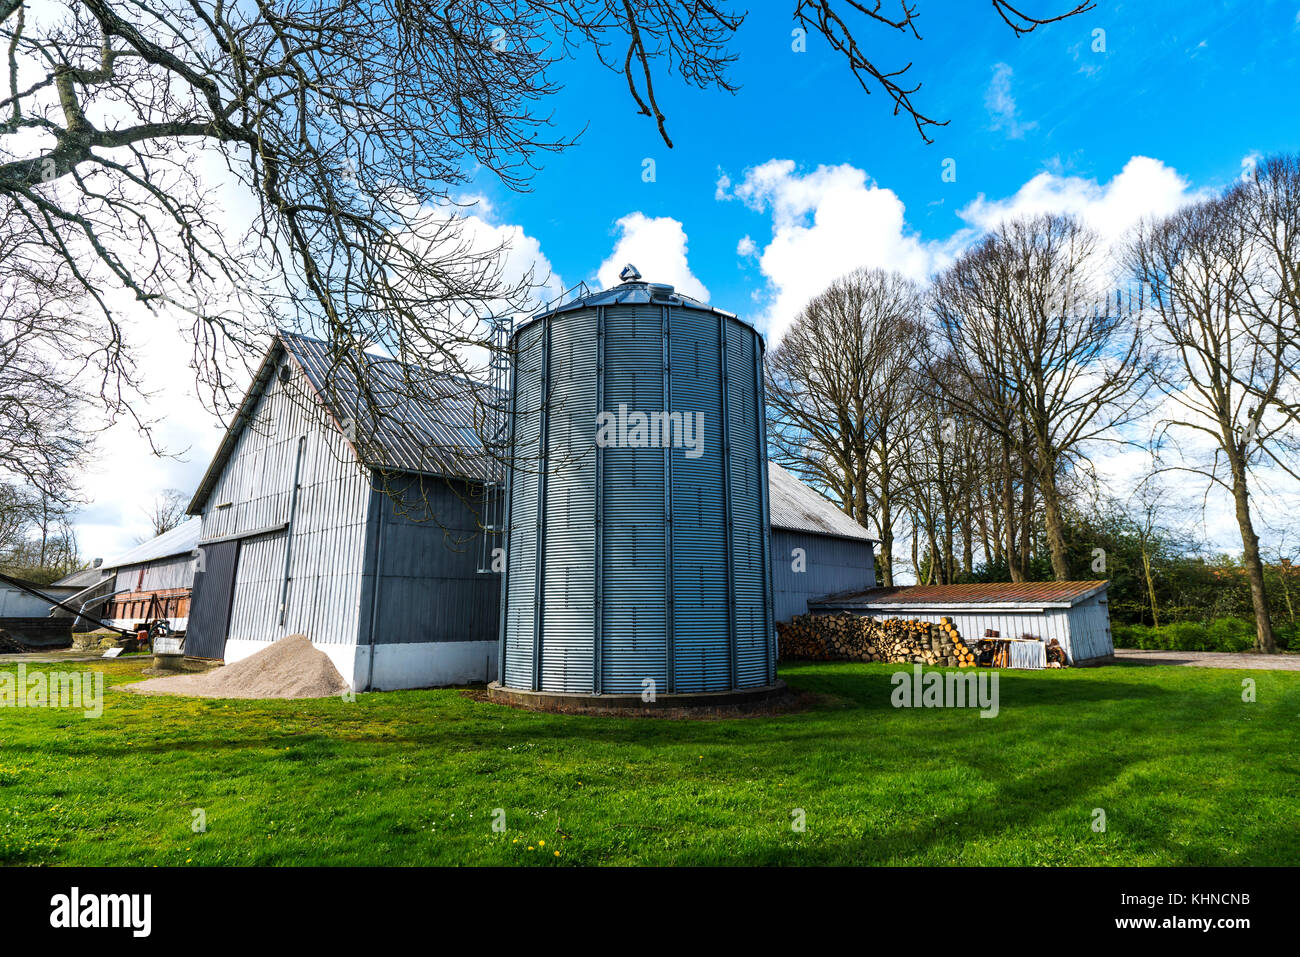 Small farm with a large silo in a rural environment in the springtime - Stock Image